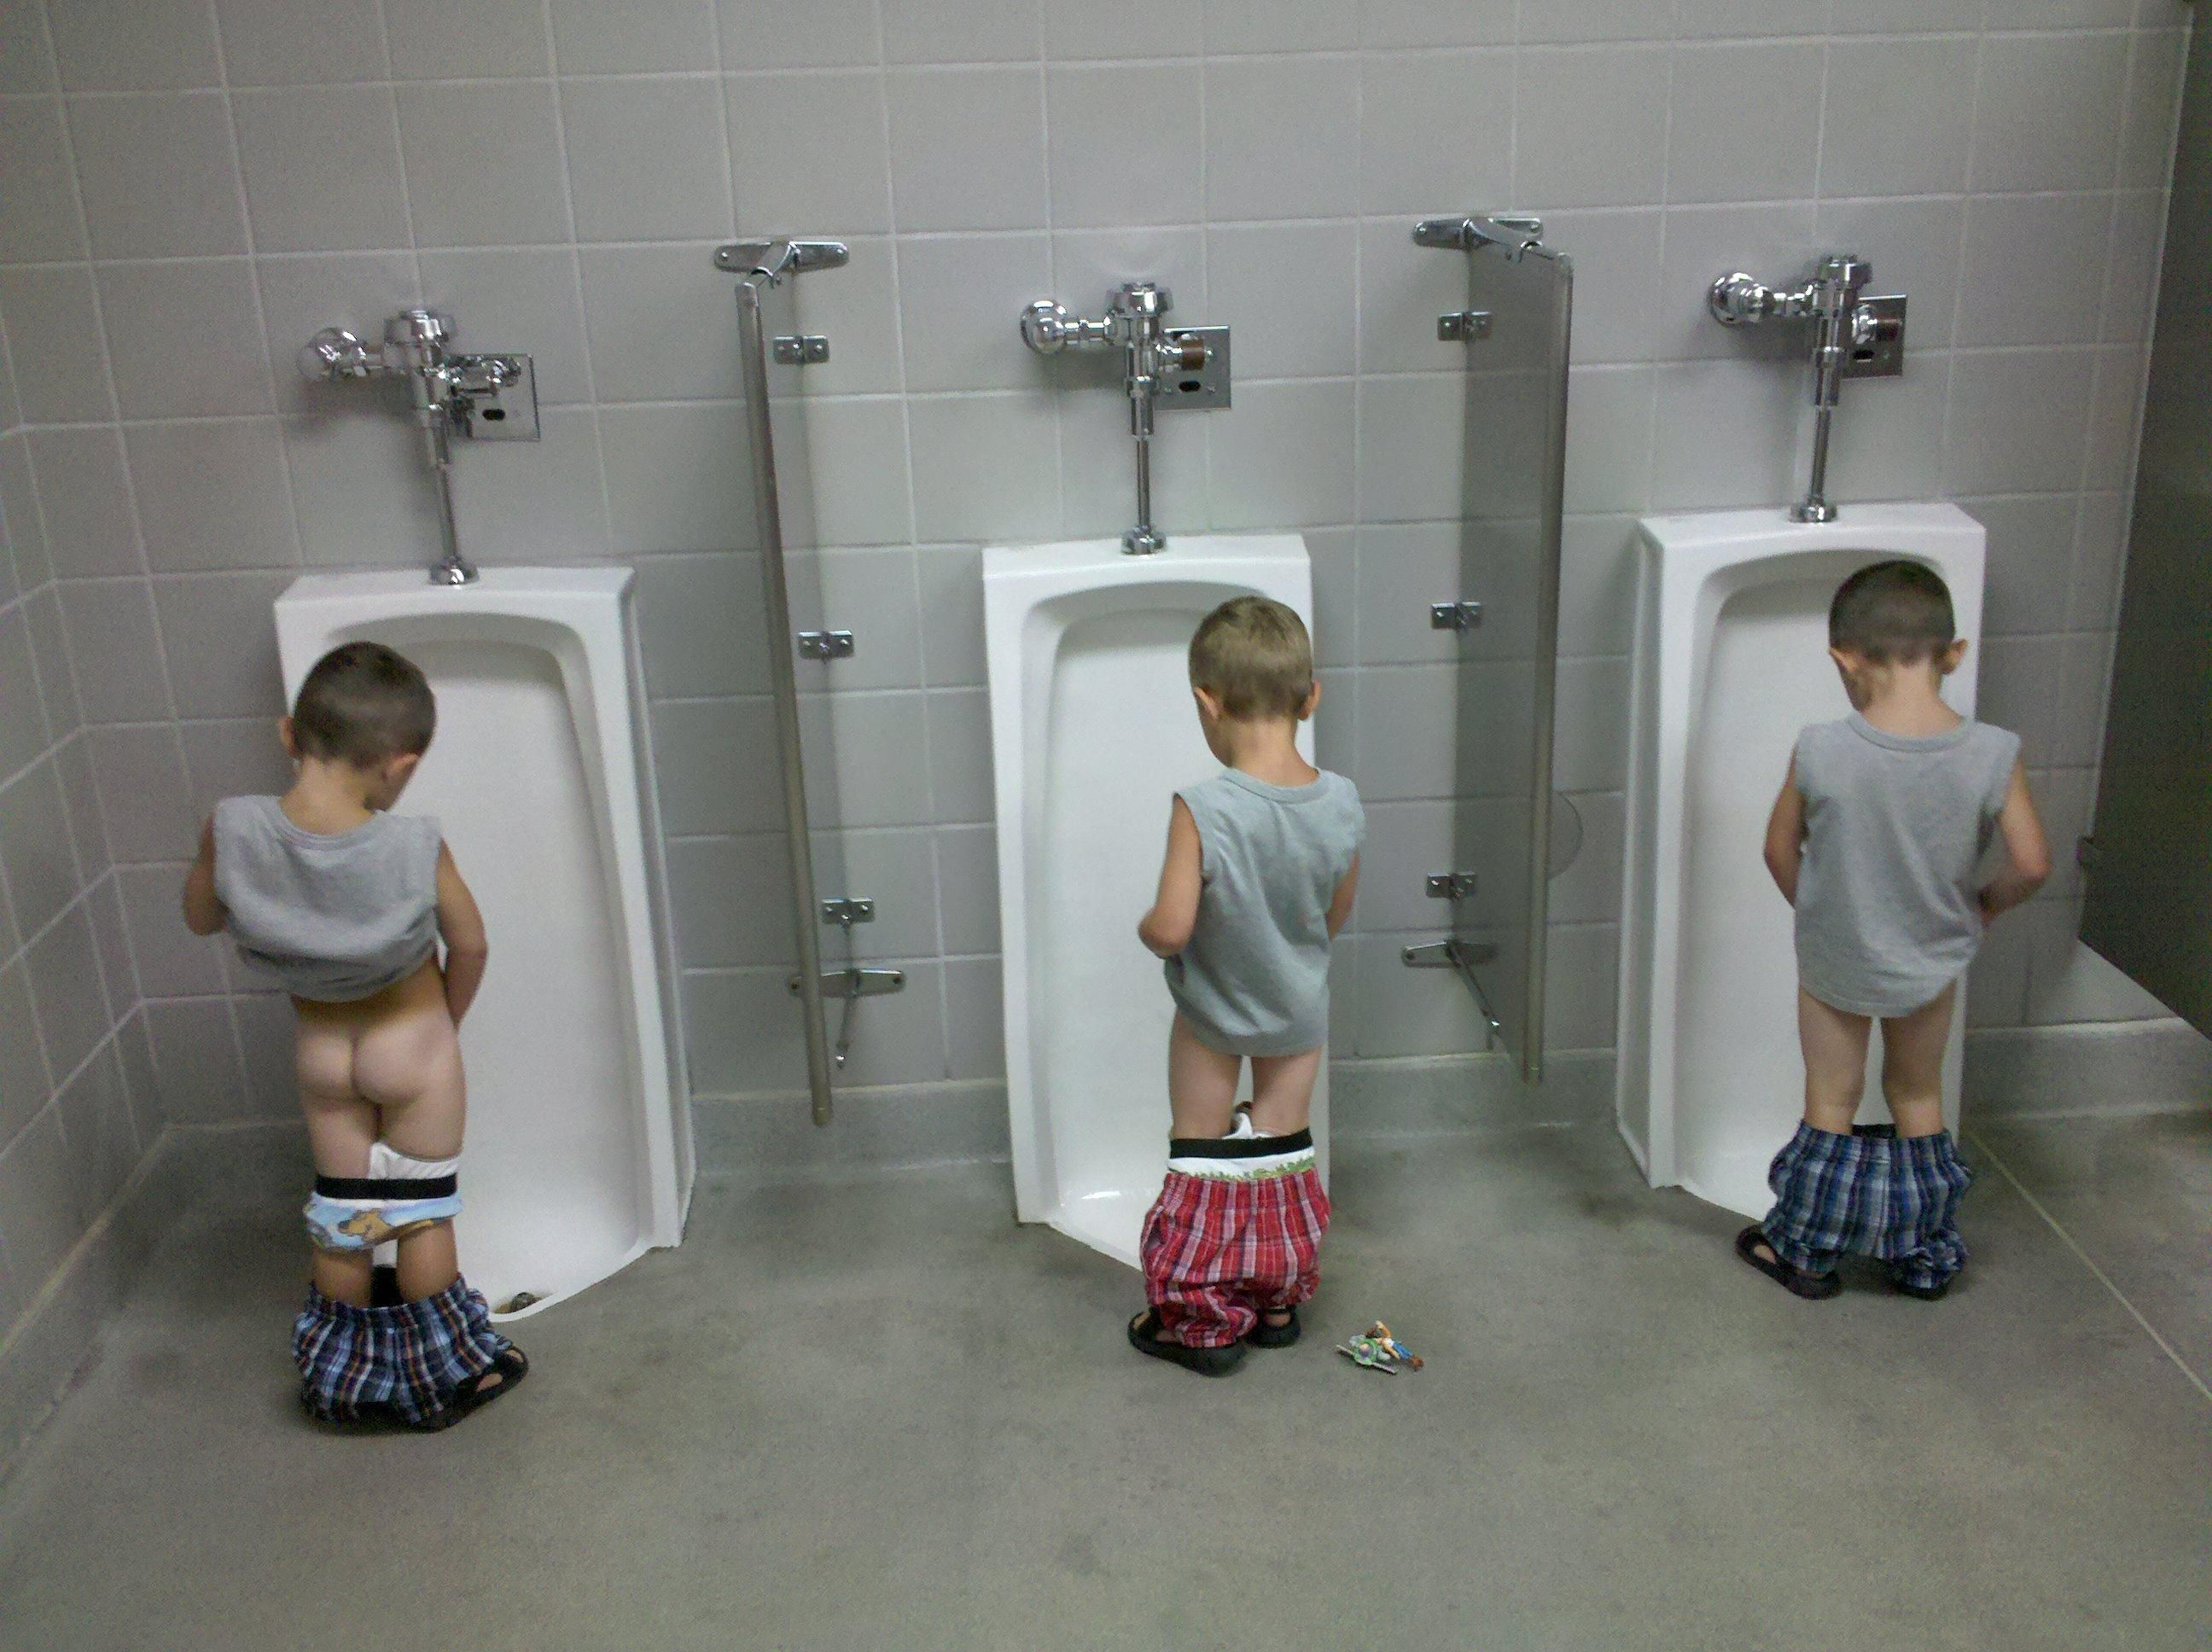 1 Of My Favorite Pics Tripletsthe First Time Using A Urinal